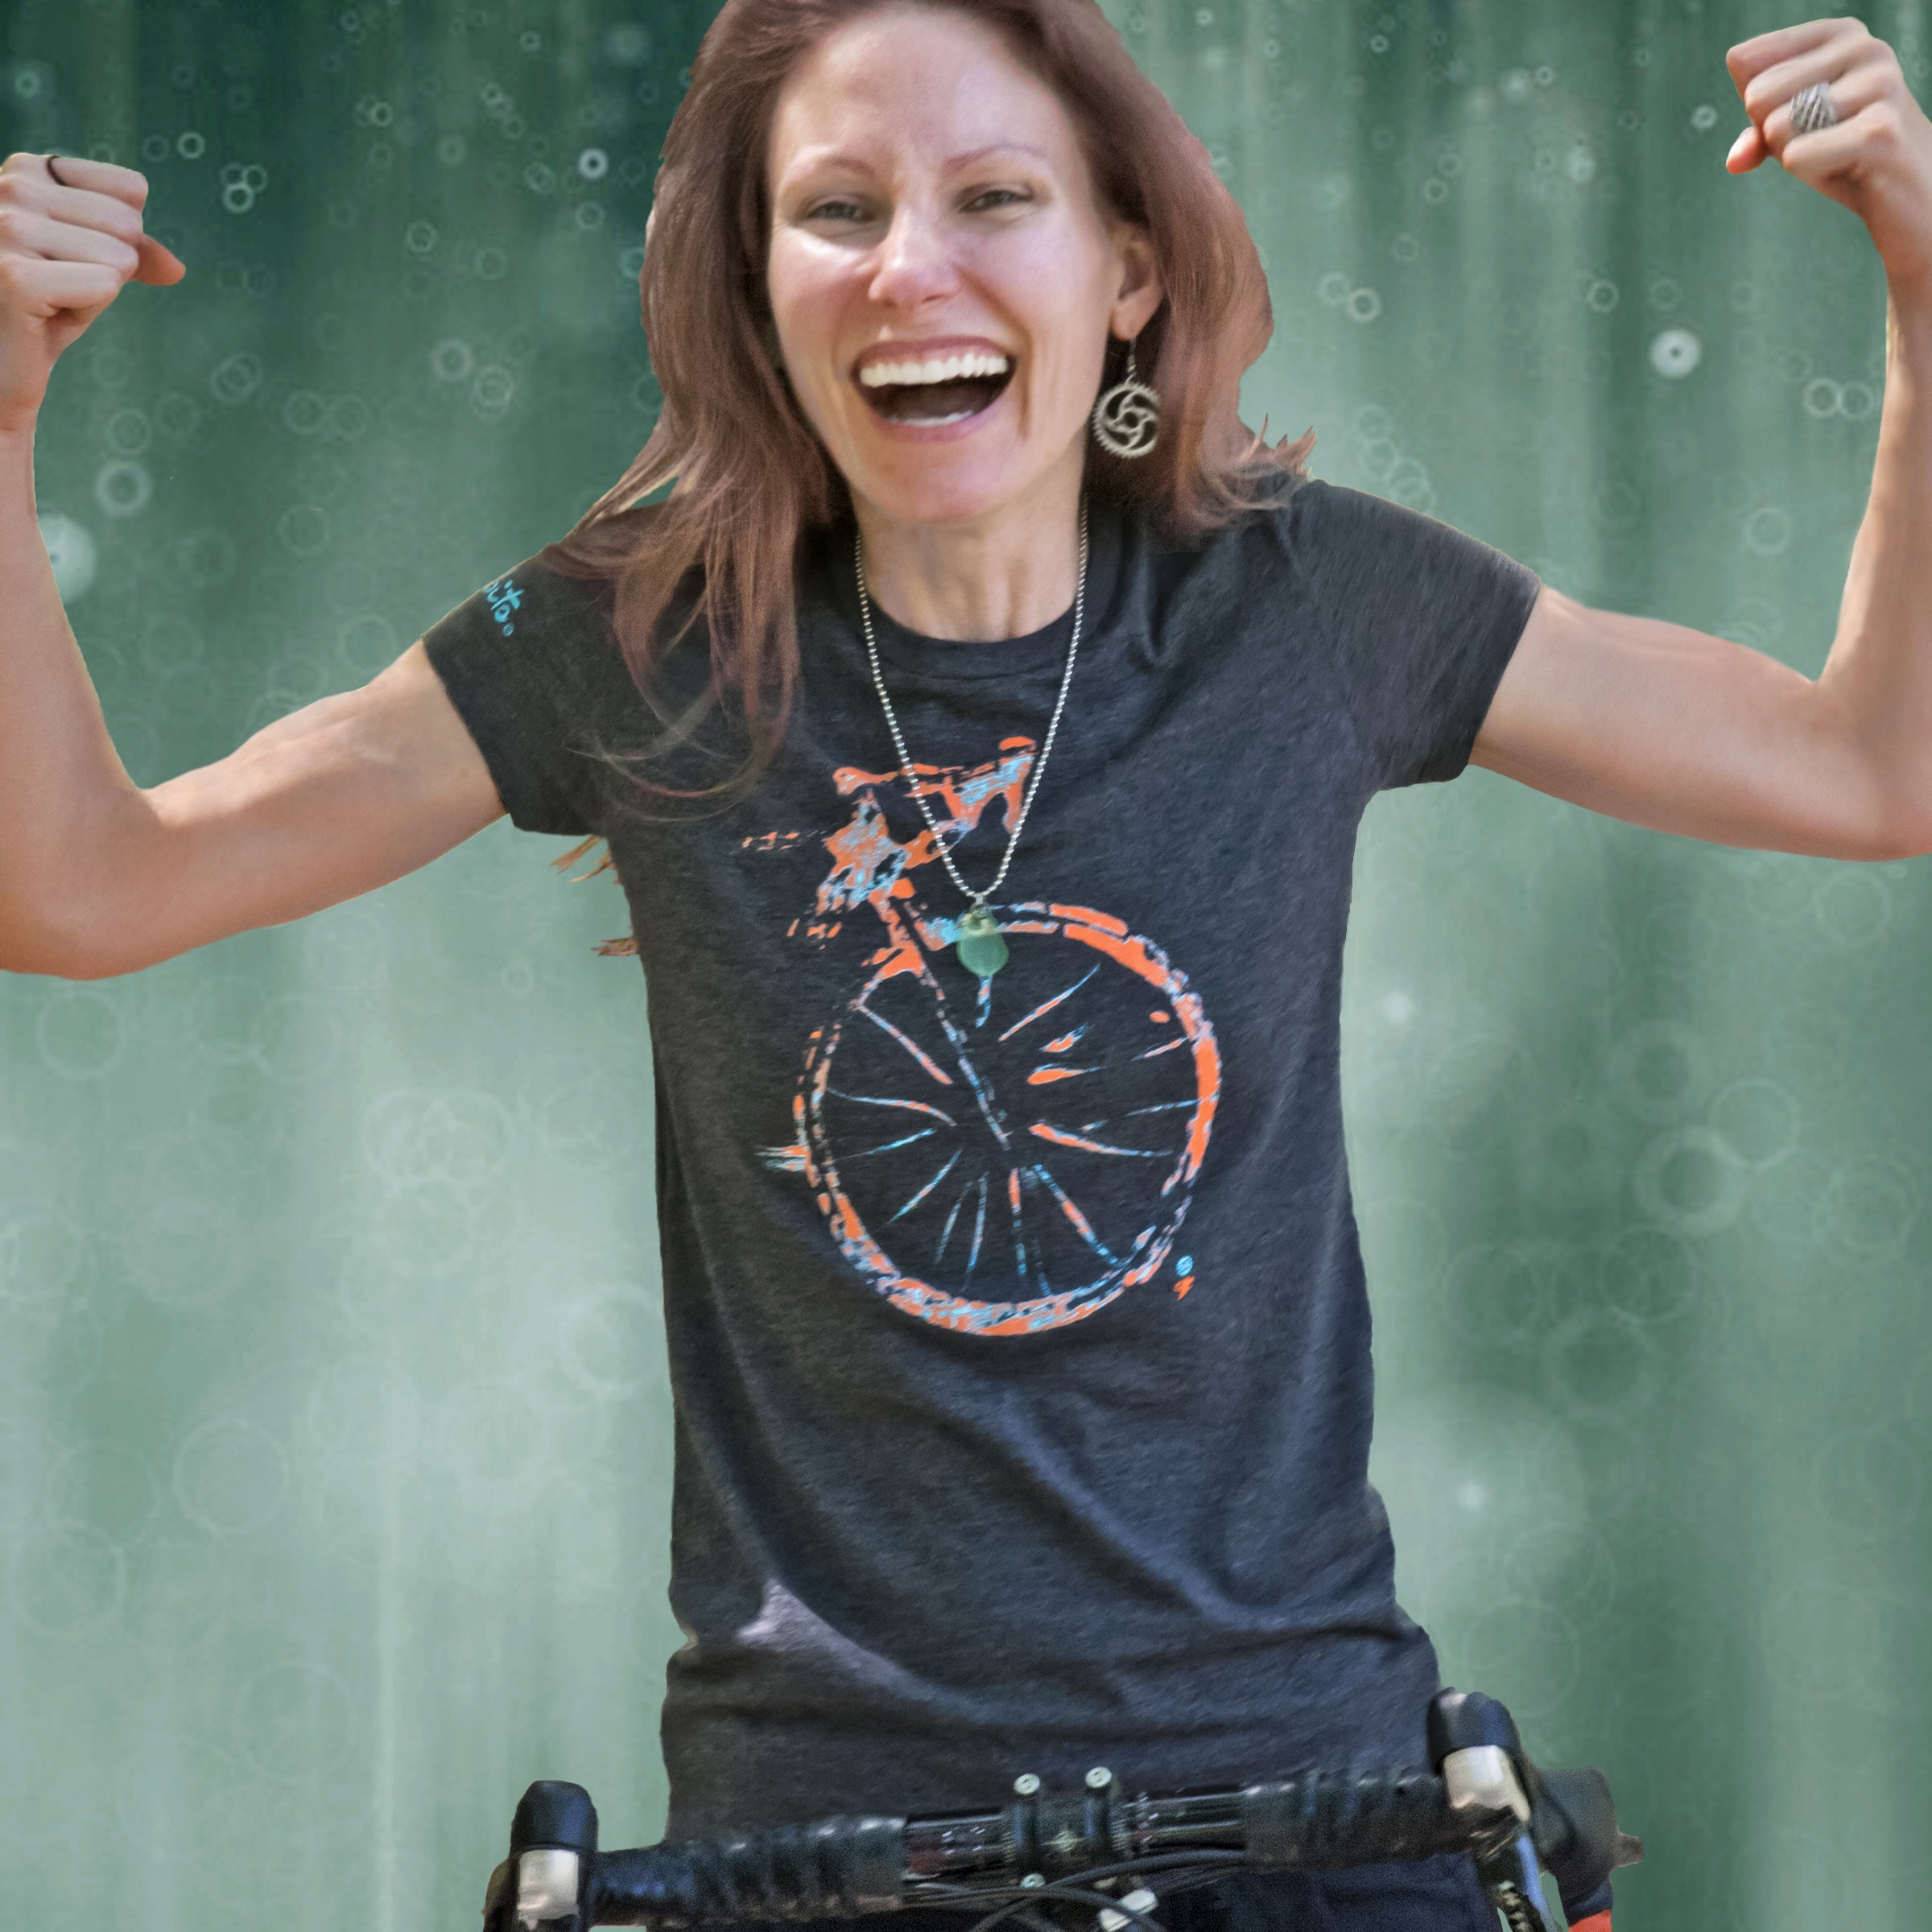 Women's Road Bike Riders Artist Tee - Dark Heather Grey by bici bits